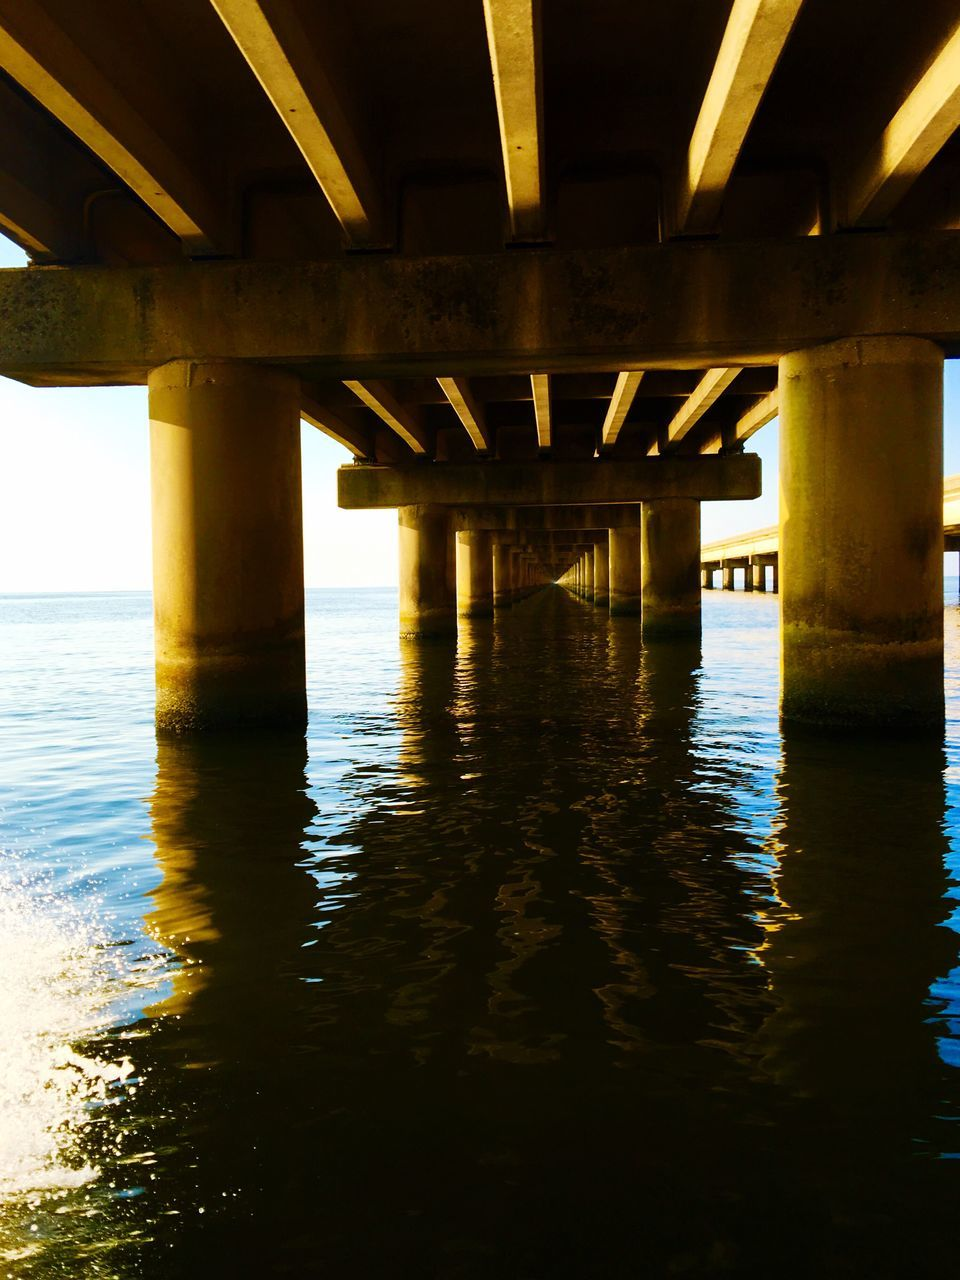 bridge - man made structure, connection, underneath, below, river, engineering, architecture, water, built structure, architectural column, bridge, strength, outdoors, under, no people, nature, day